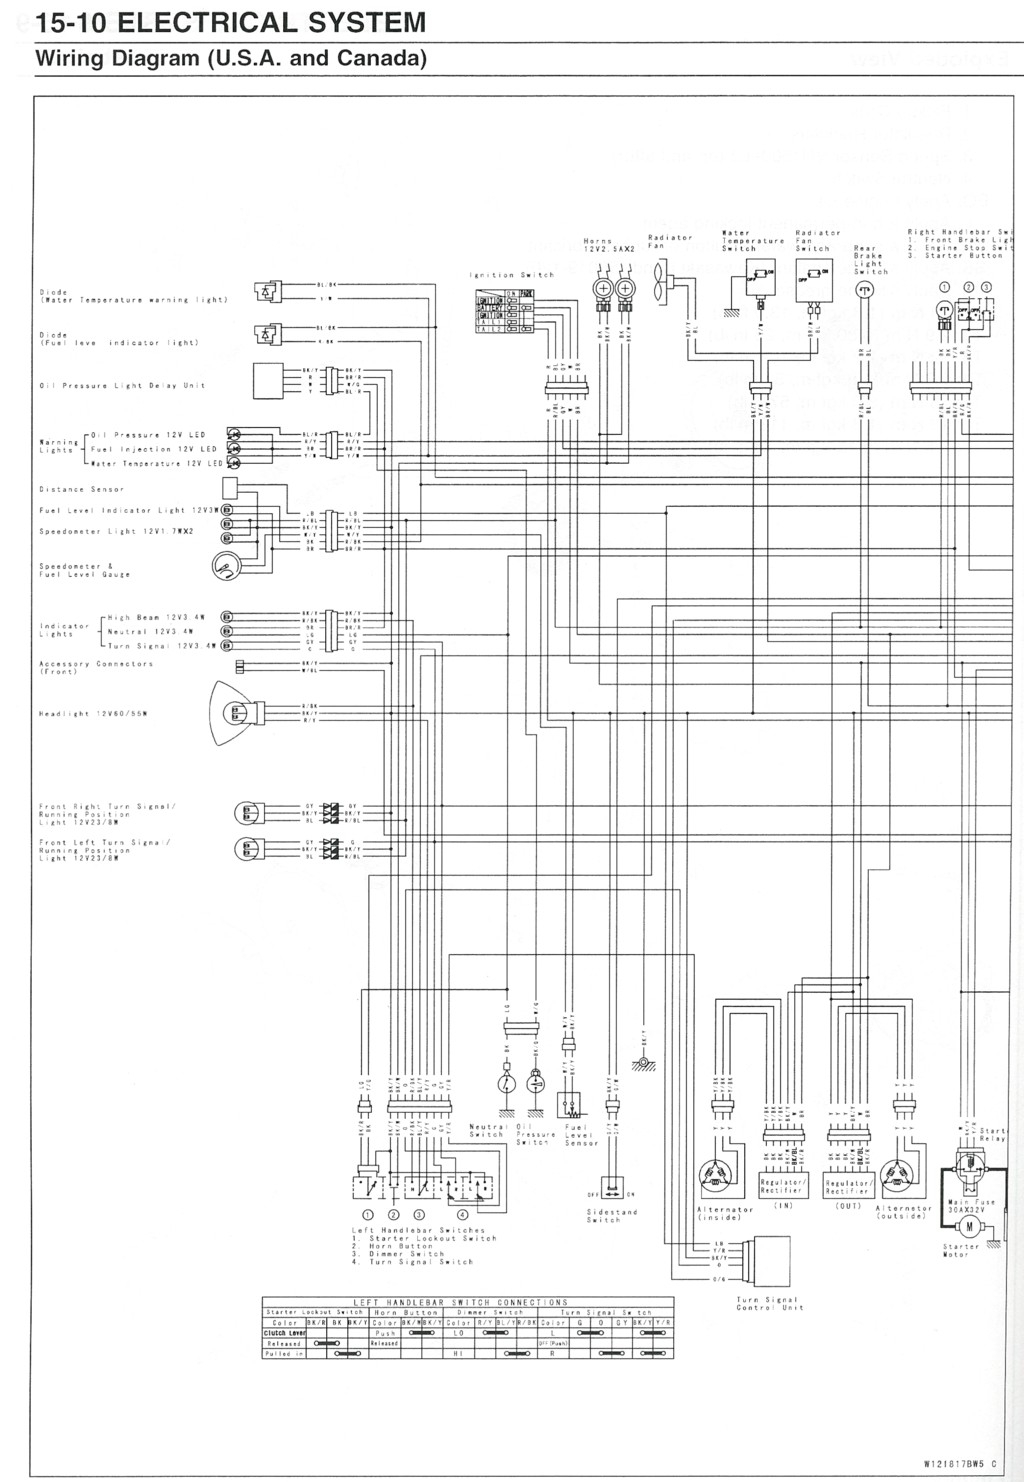 nomad_wiring_diagram_carbed_p1 vulcan wiring diagrams gadget's fixit page Kawasaki Vulcan 1500 Wiring Diagram at bayanpartner.co